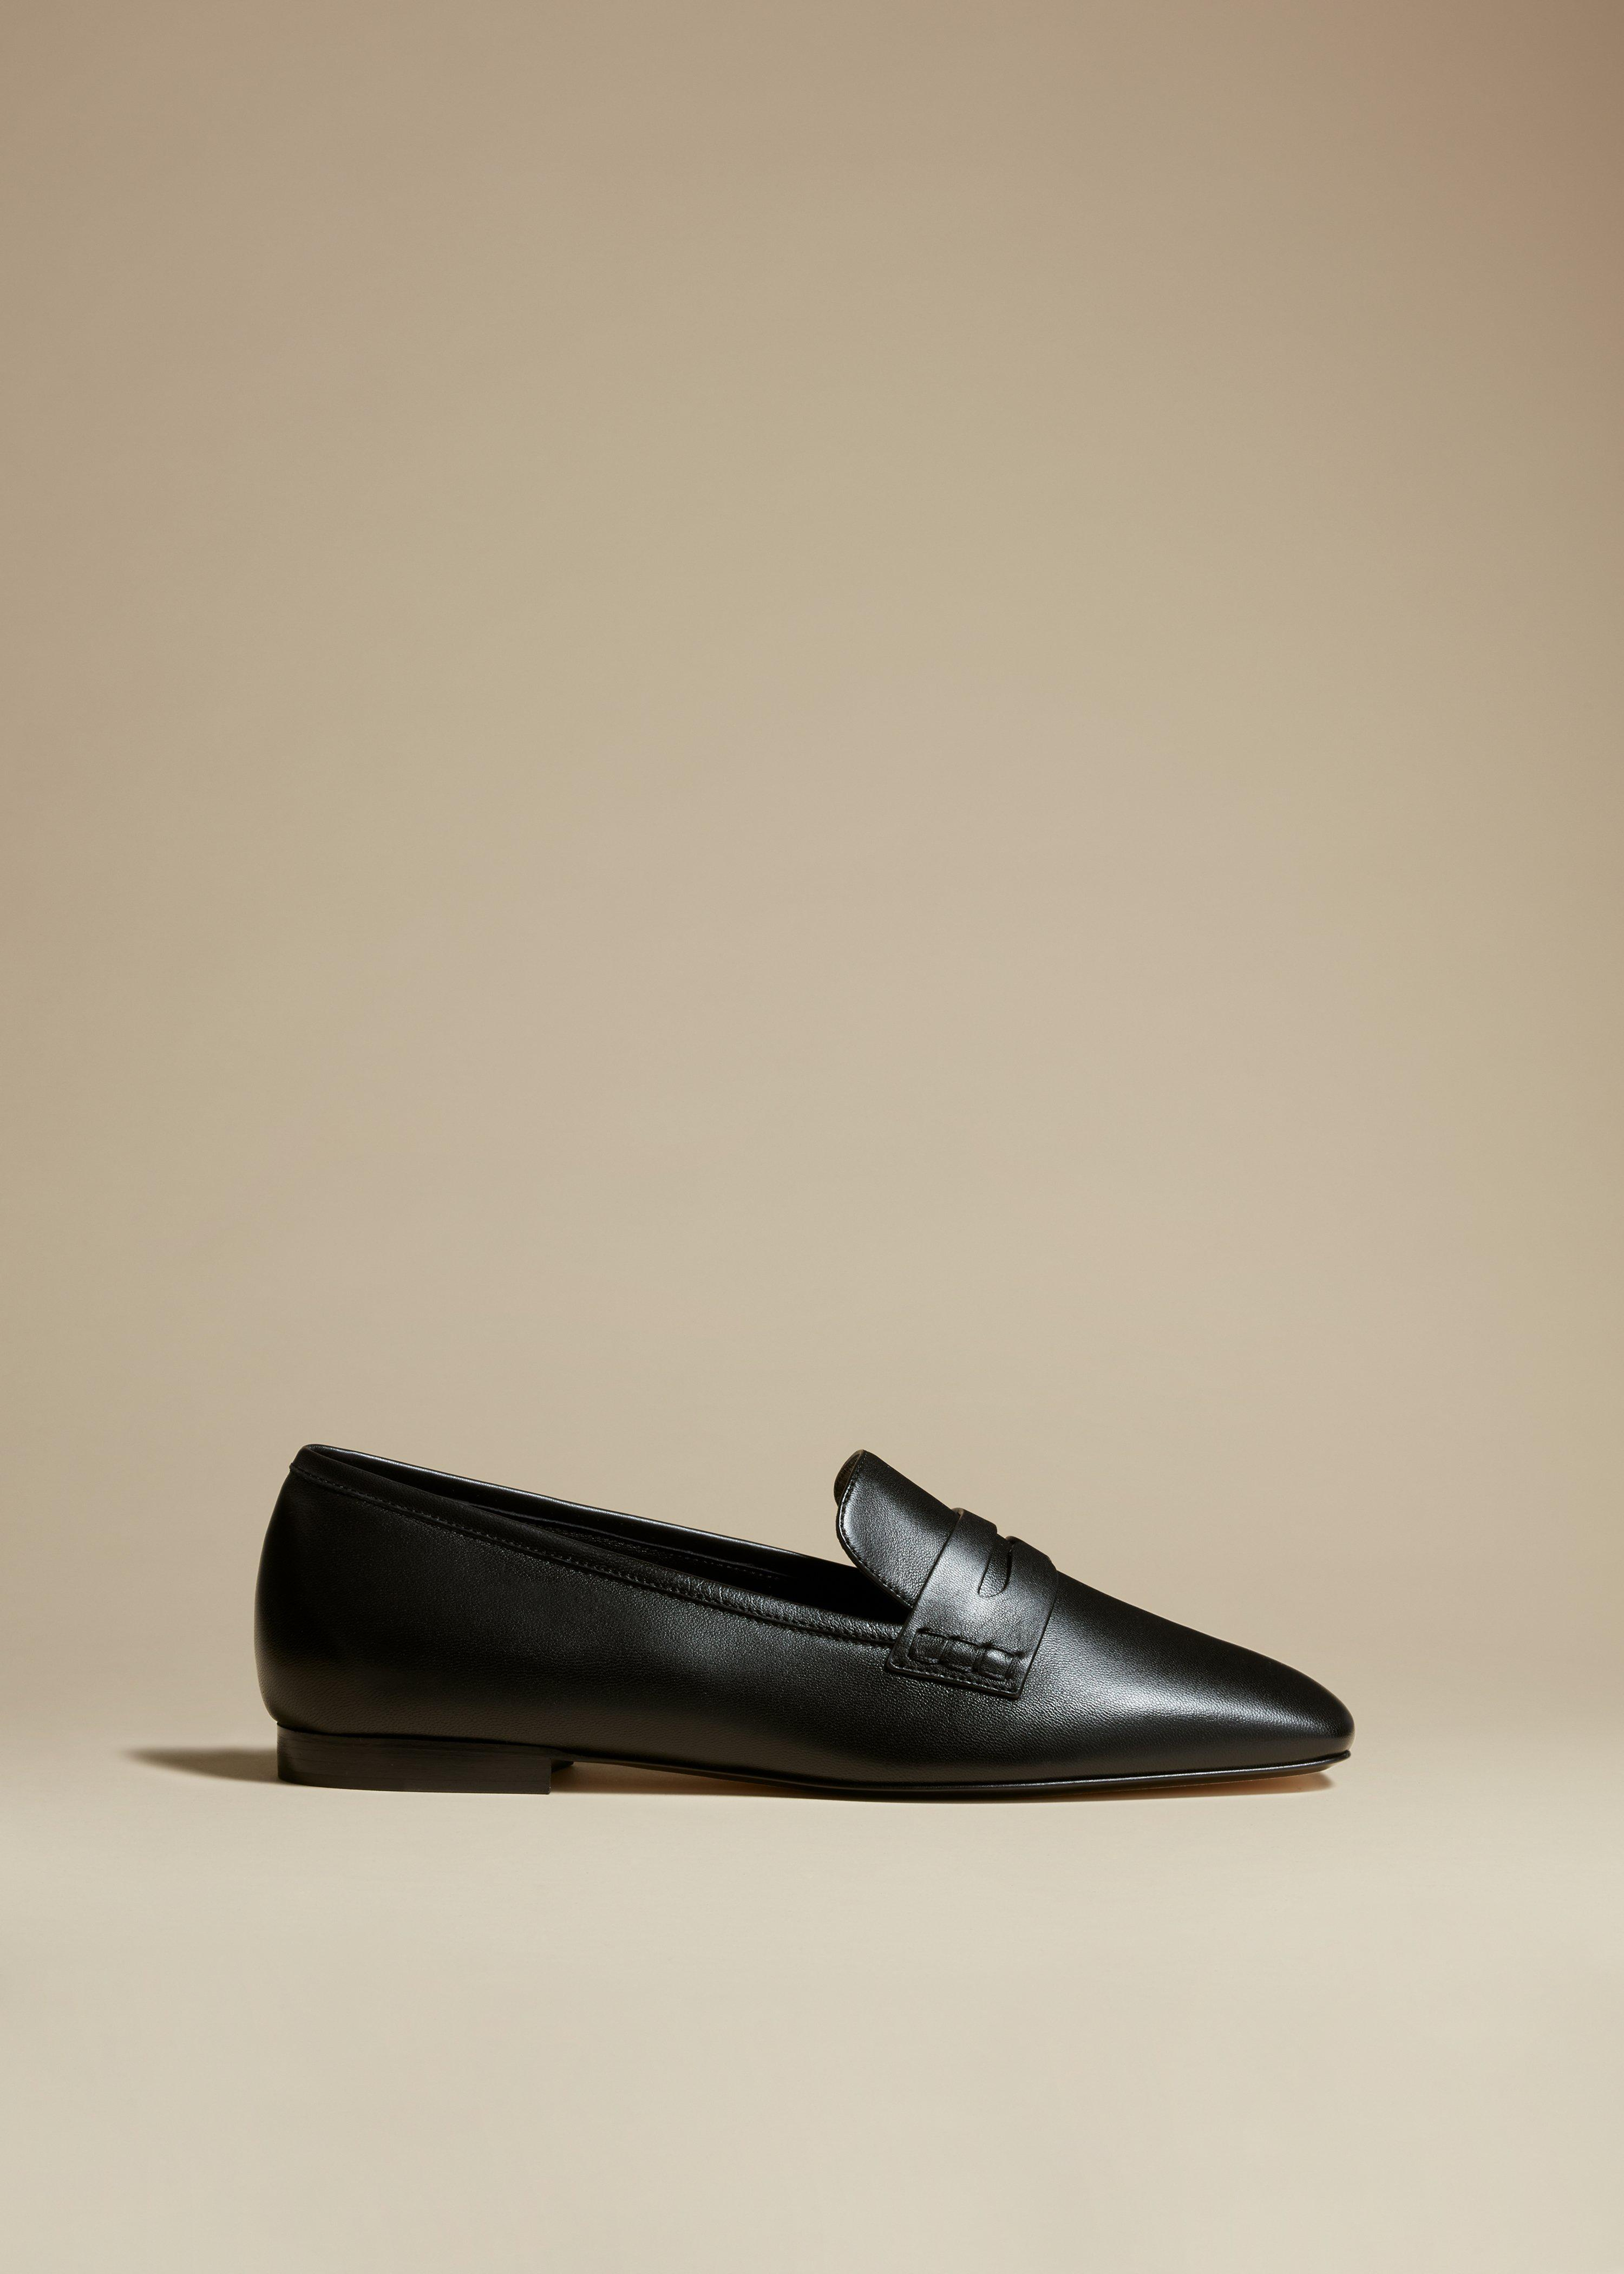 The Carlisle Loafer in Black Leather